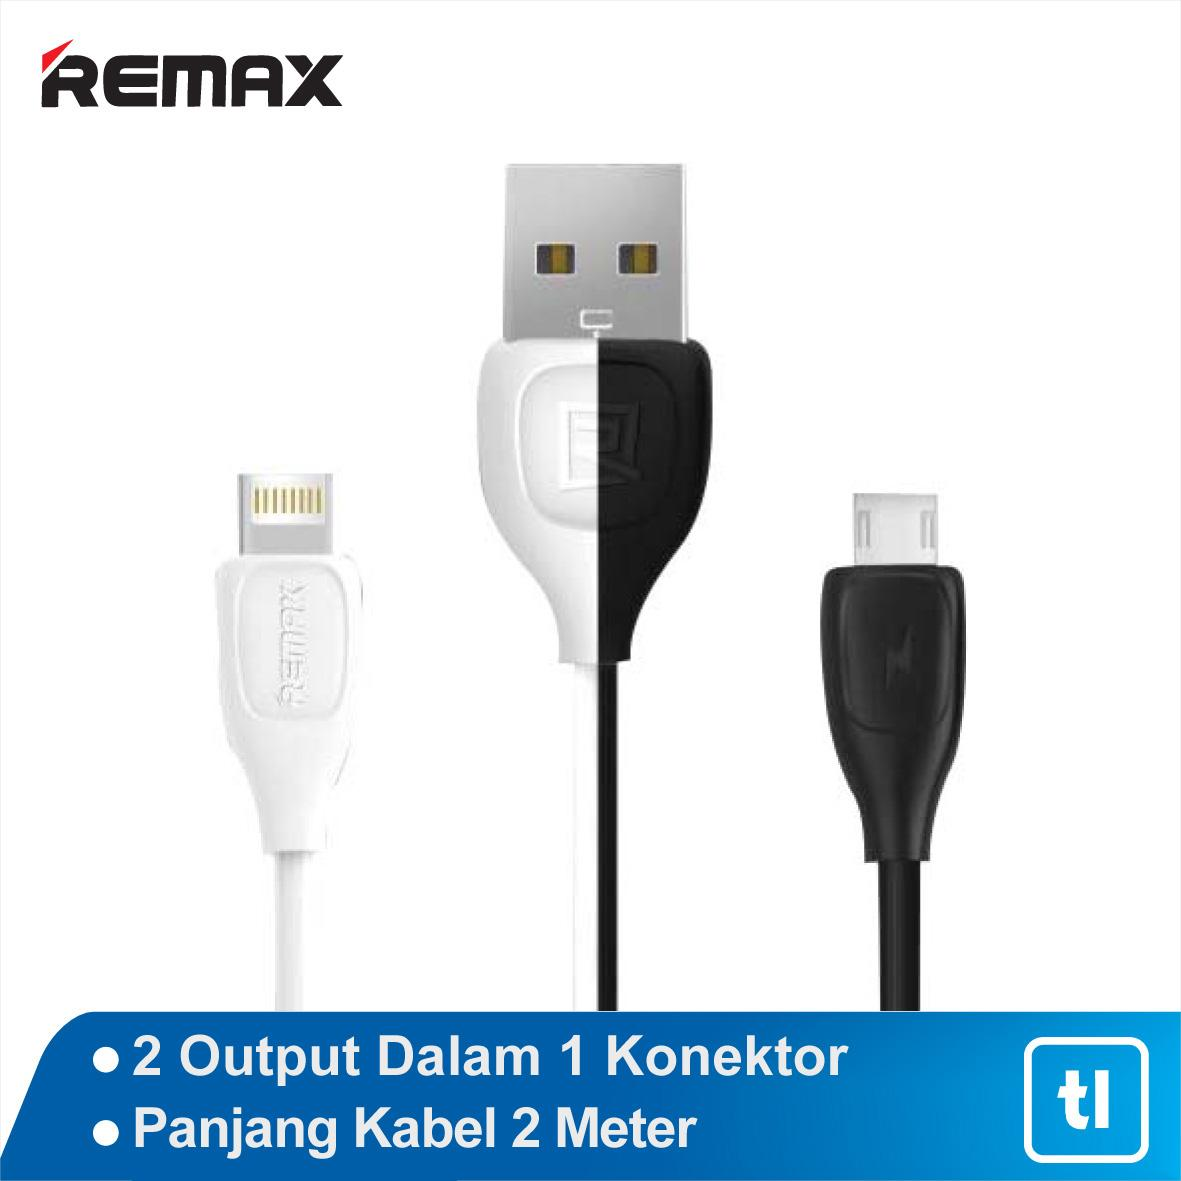 Buy Sell Cheapest 1 2m Cable Best Quality Product Deals Kabel Data Iphone 2meter Original Remax Lesu 2 In Rc 050t Garansi Murah Awet